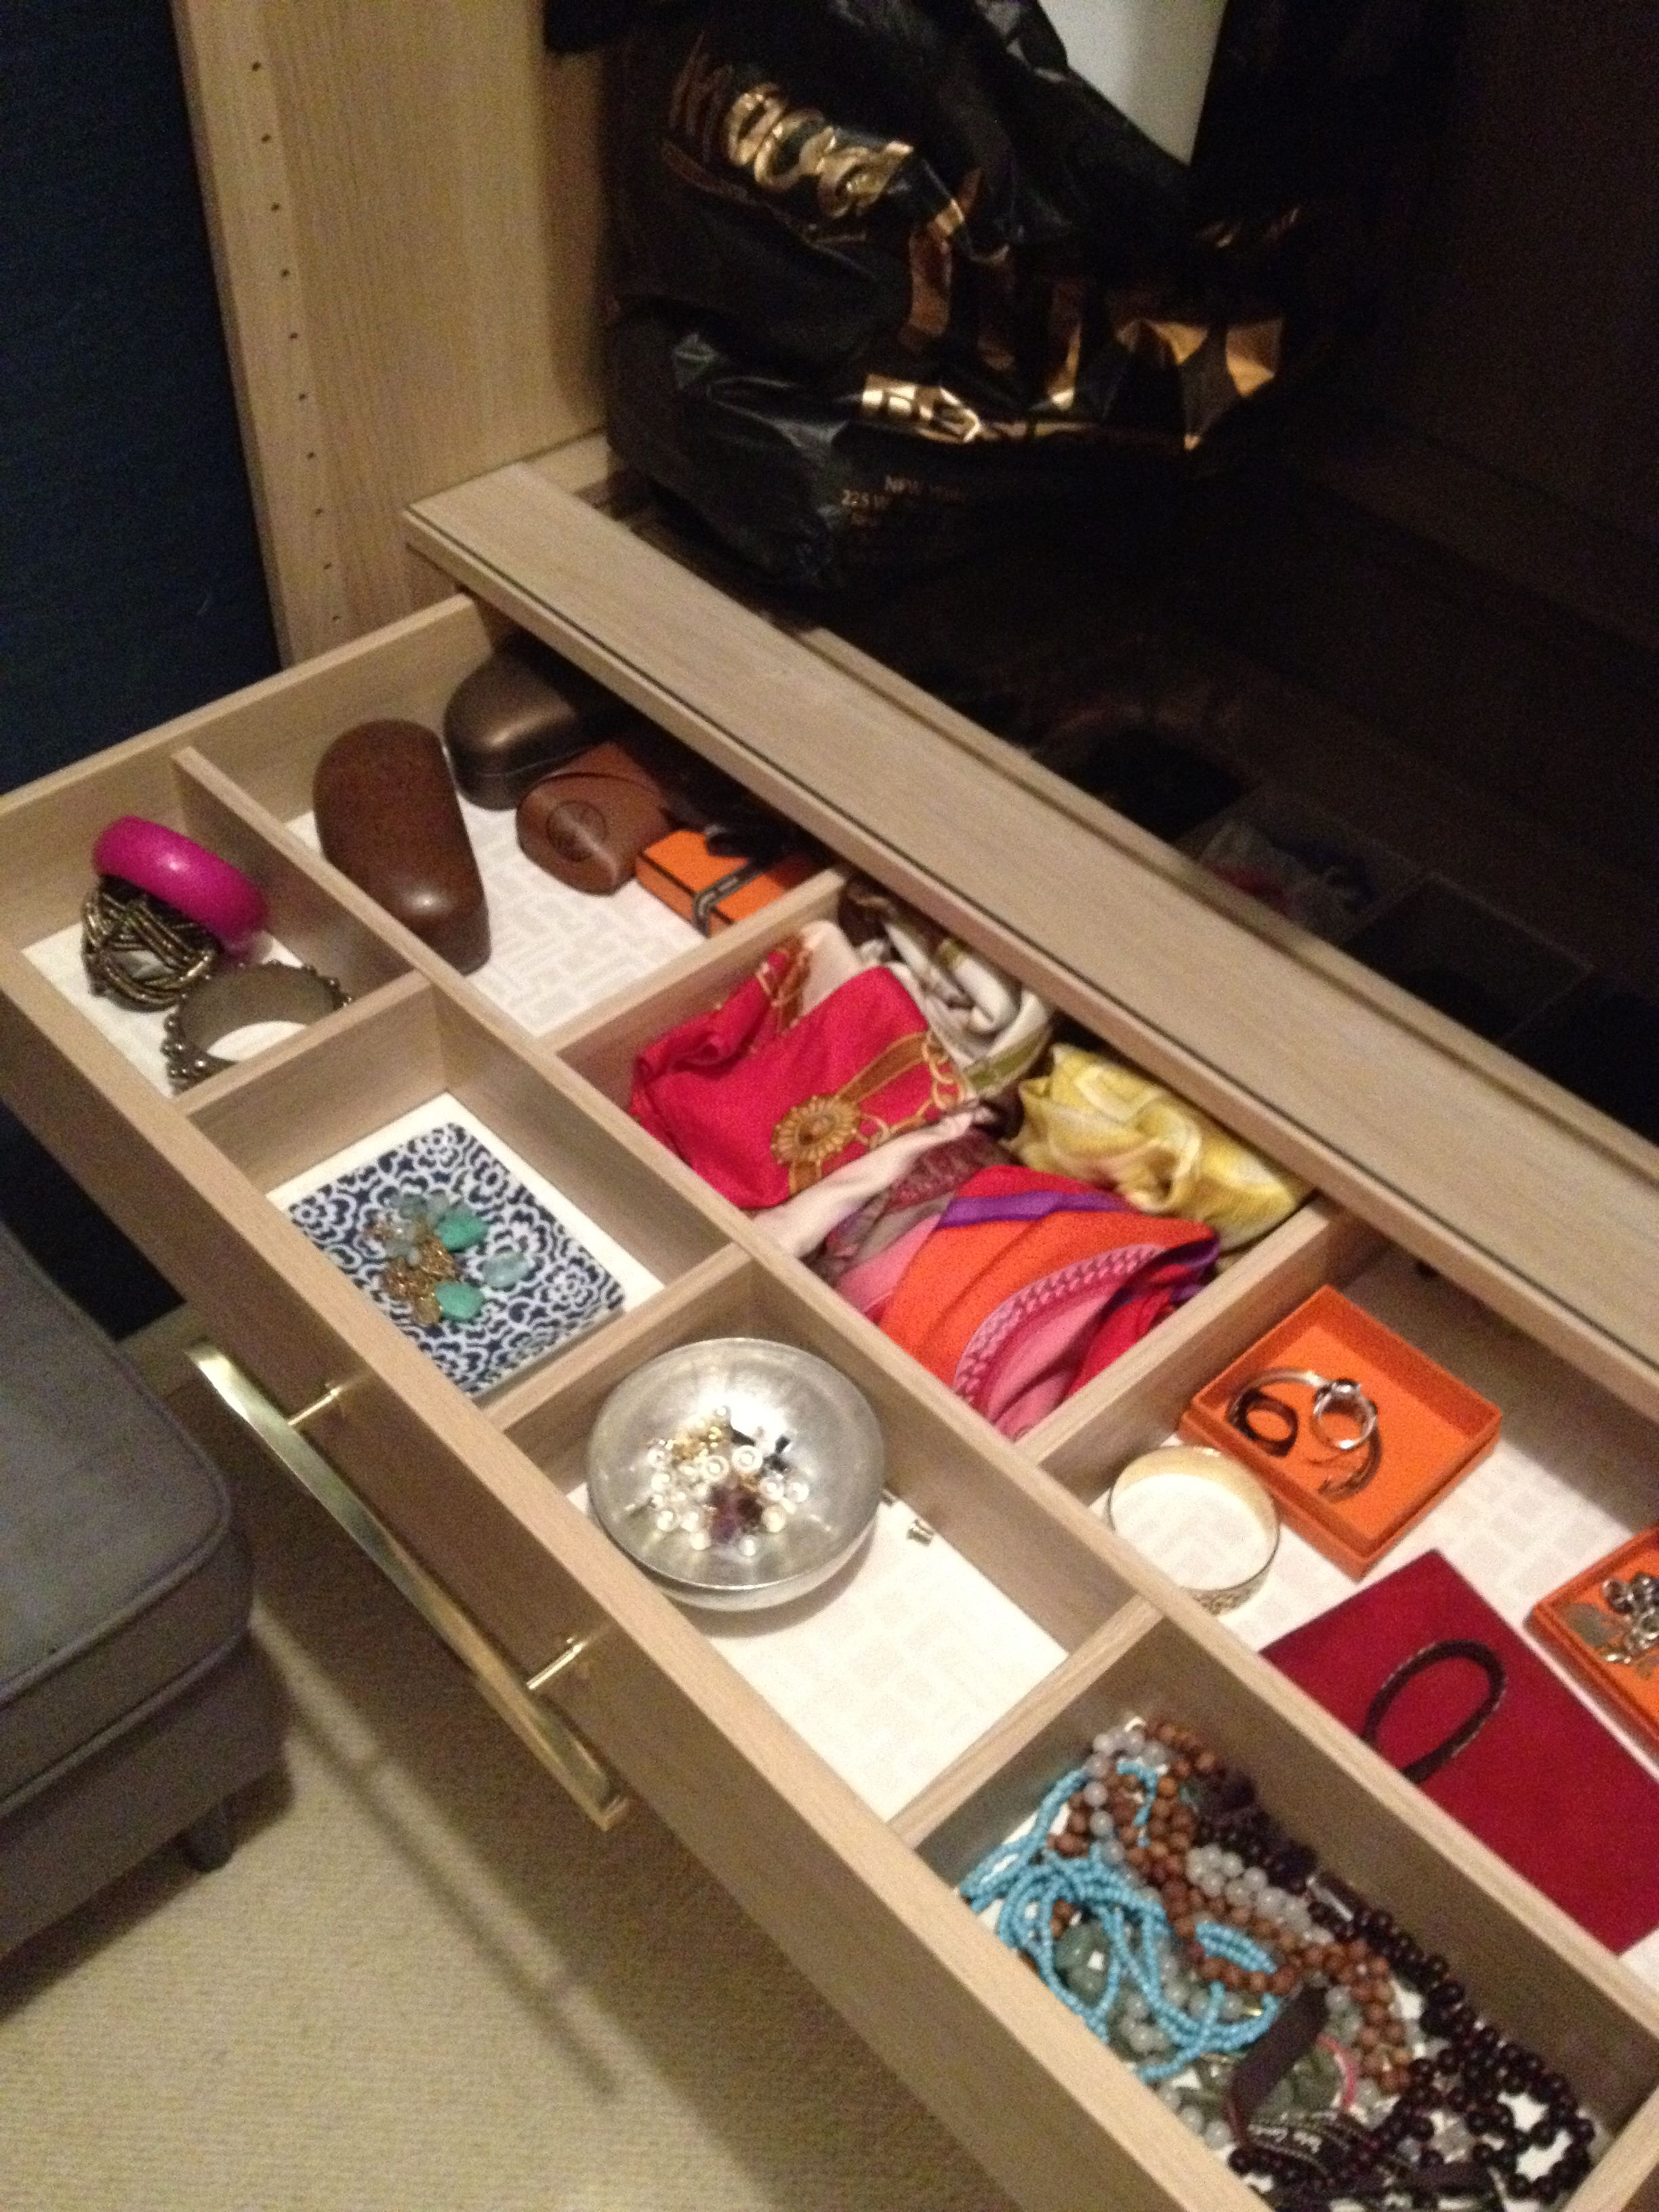 Ikea Pax Closet Drawer With Wallpaper Inside Like The